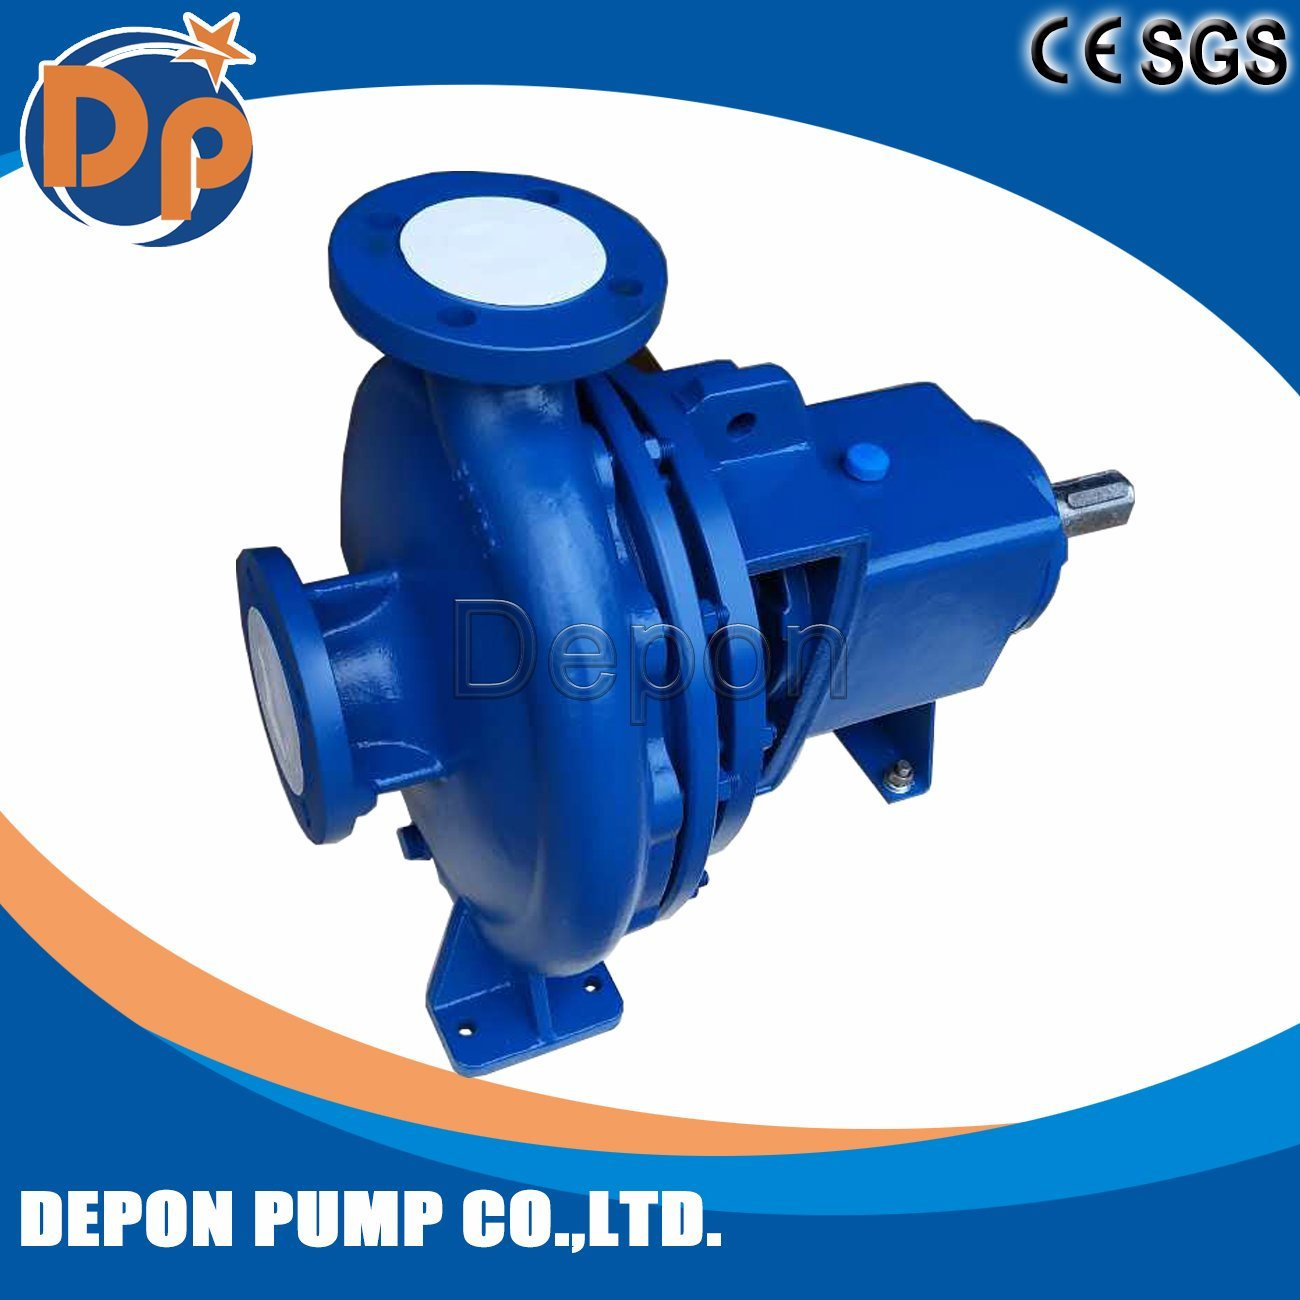 End-Suction Electric Fire Pump Type pictures & photos